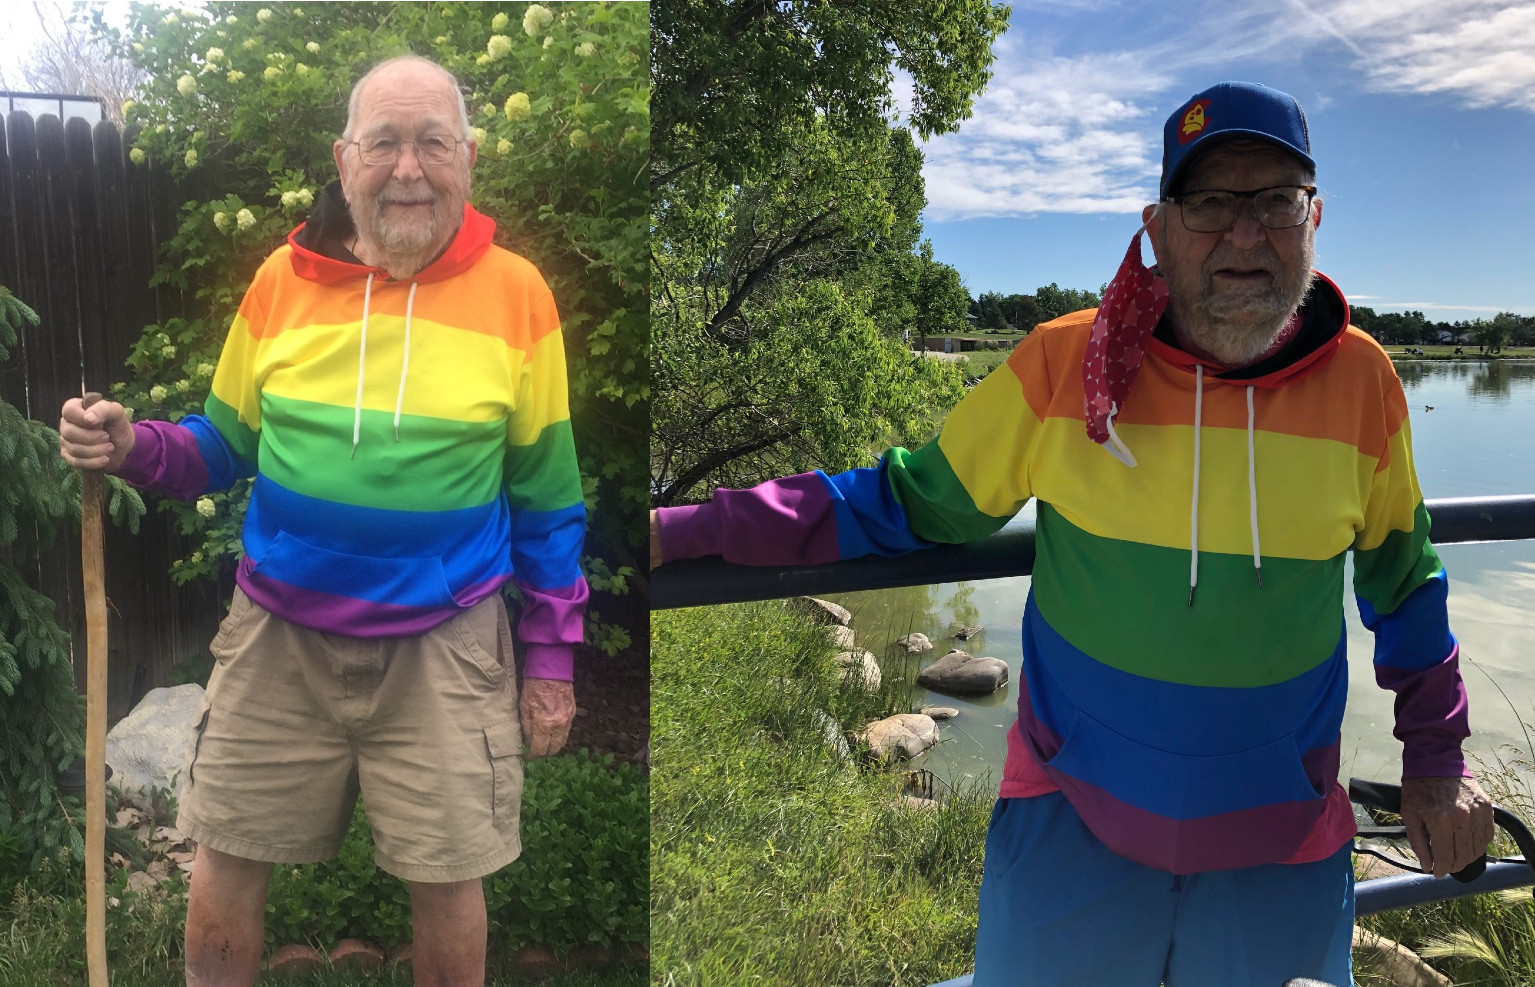 Grandfather bravely comes out as gay at 90 years old, proving it's never too late to embrace your true self